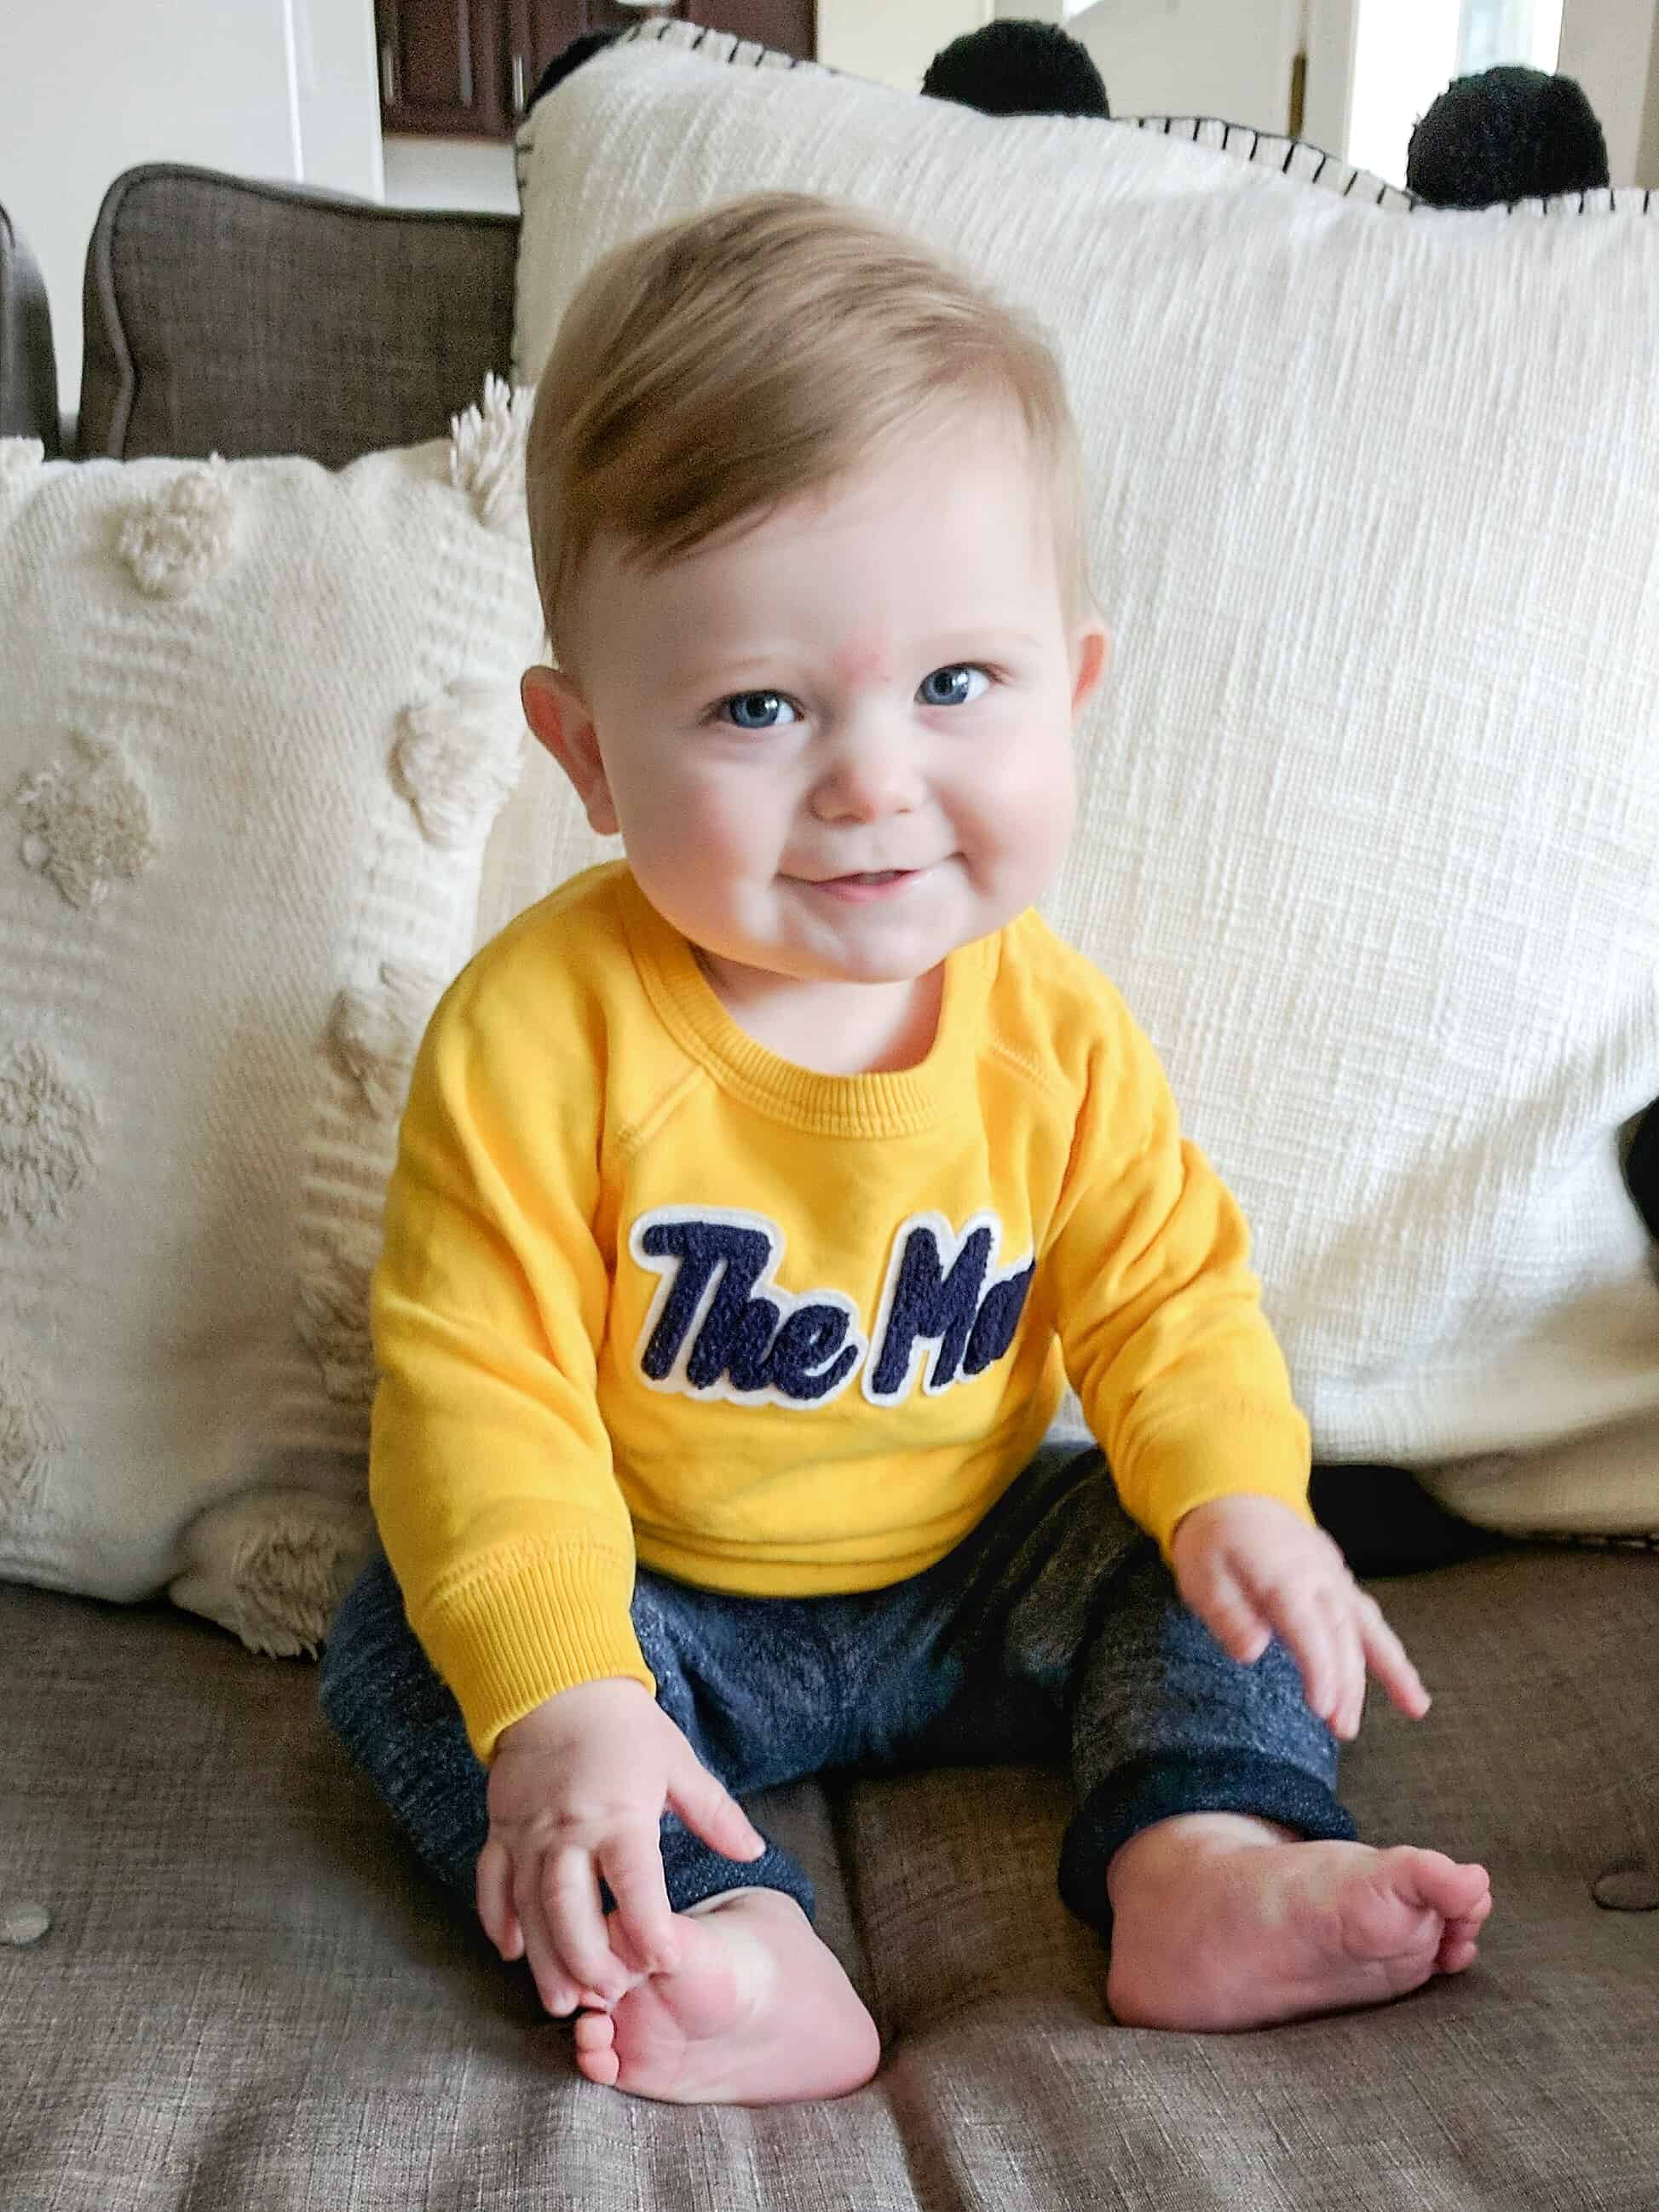 baby boy in yellow sweatshirt on couch